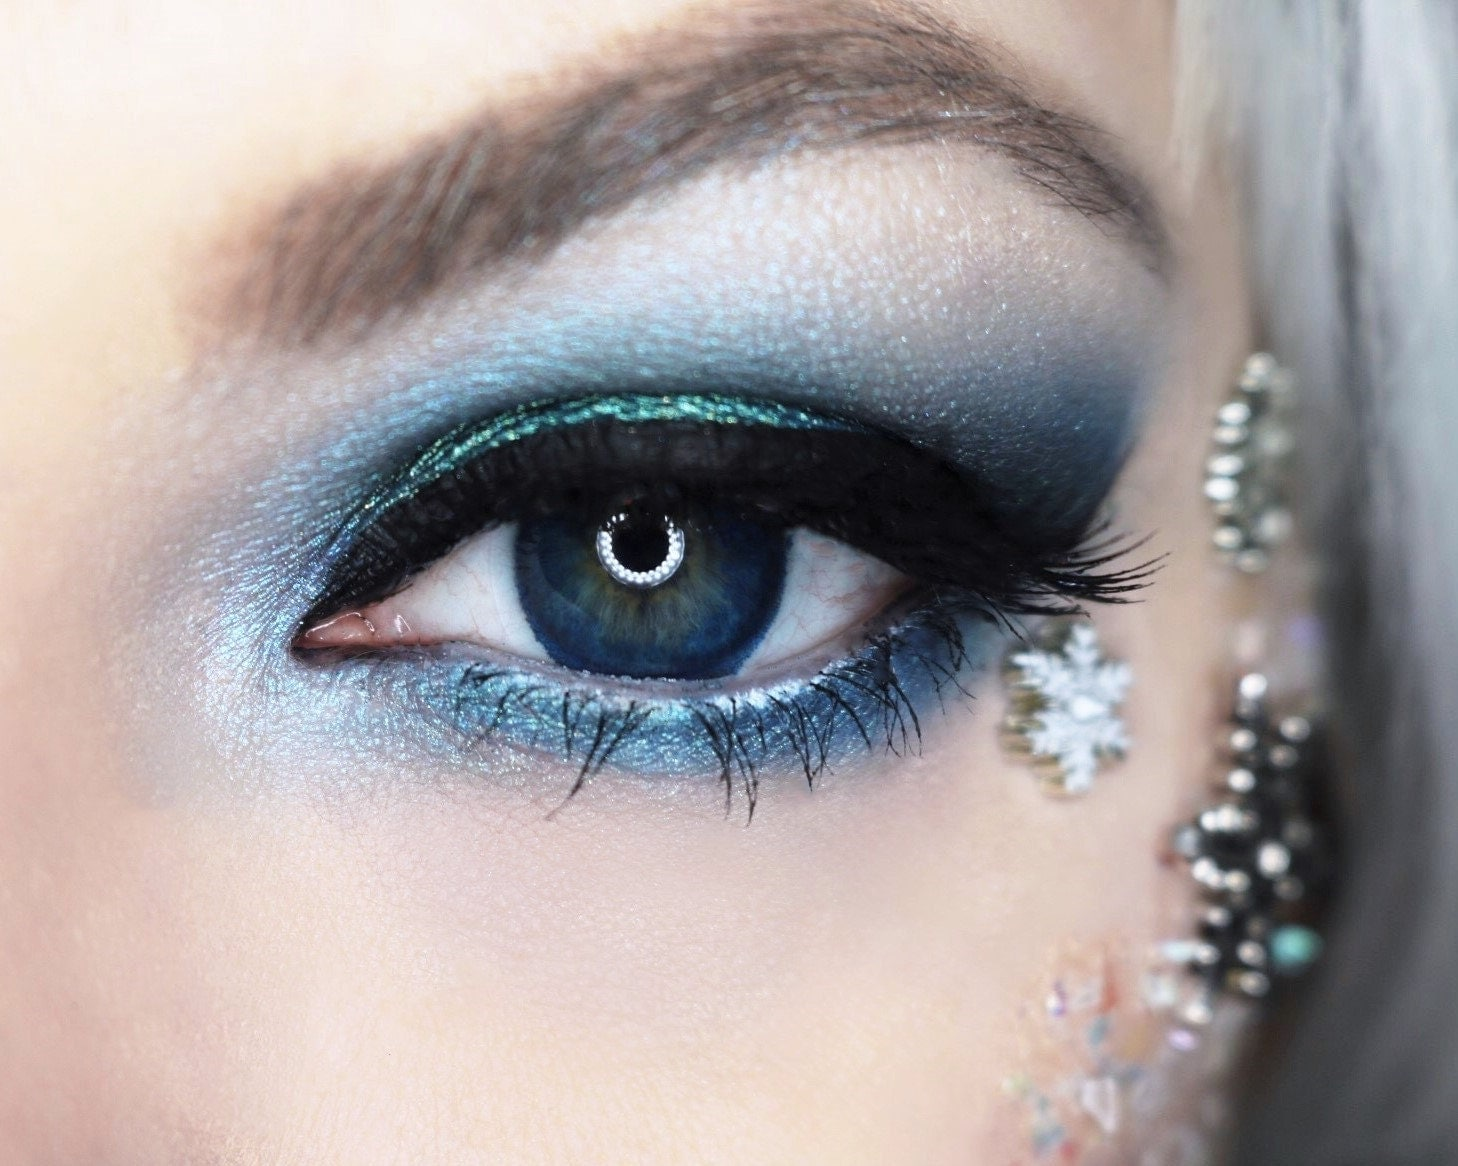 Ice Princess Costume -Temporary Face Tattoo Makeup eye decorations snowflakes